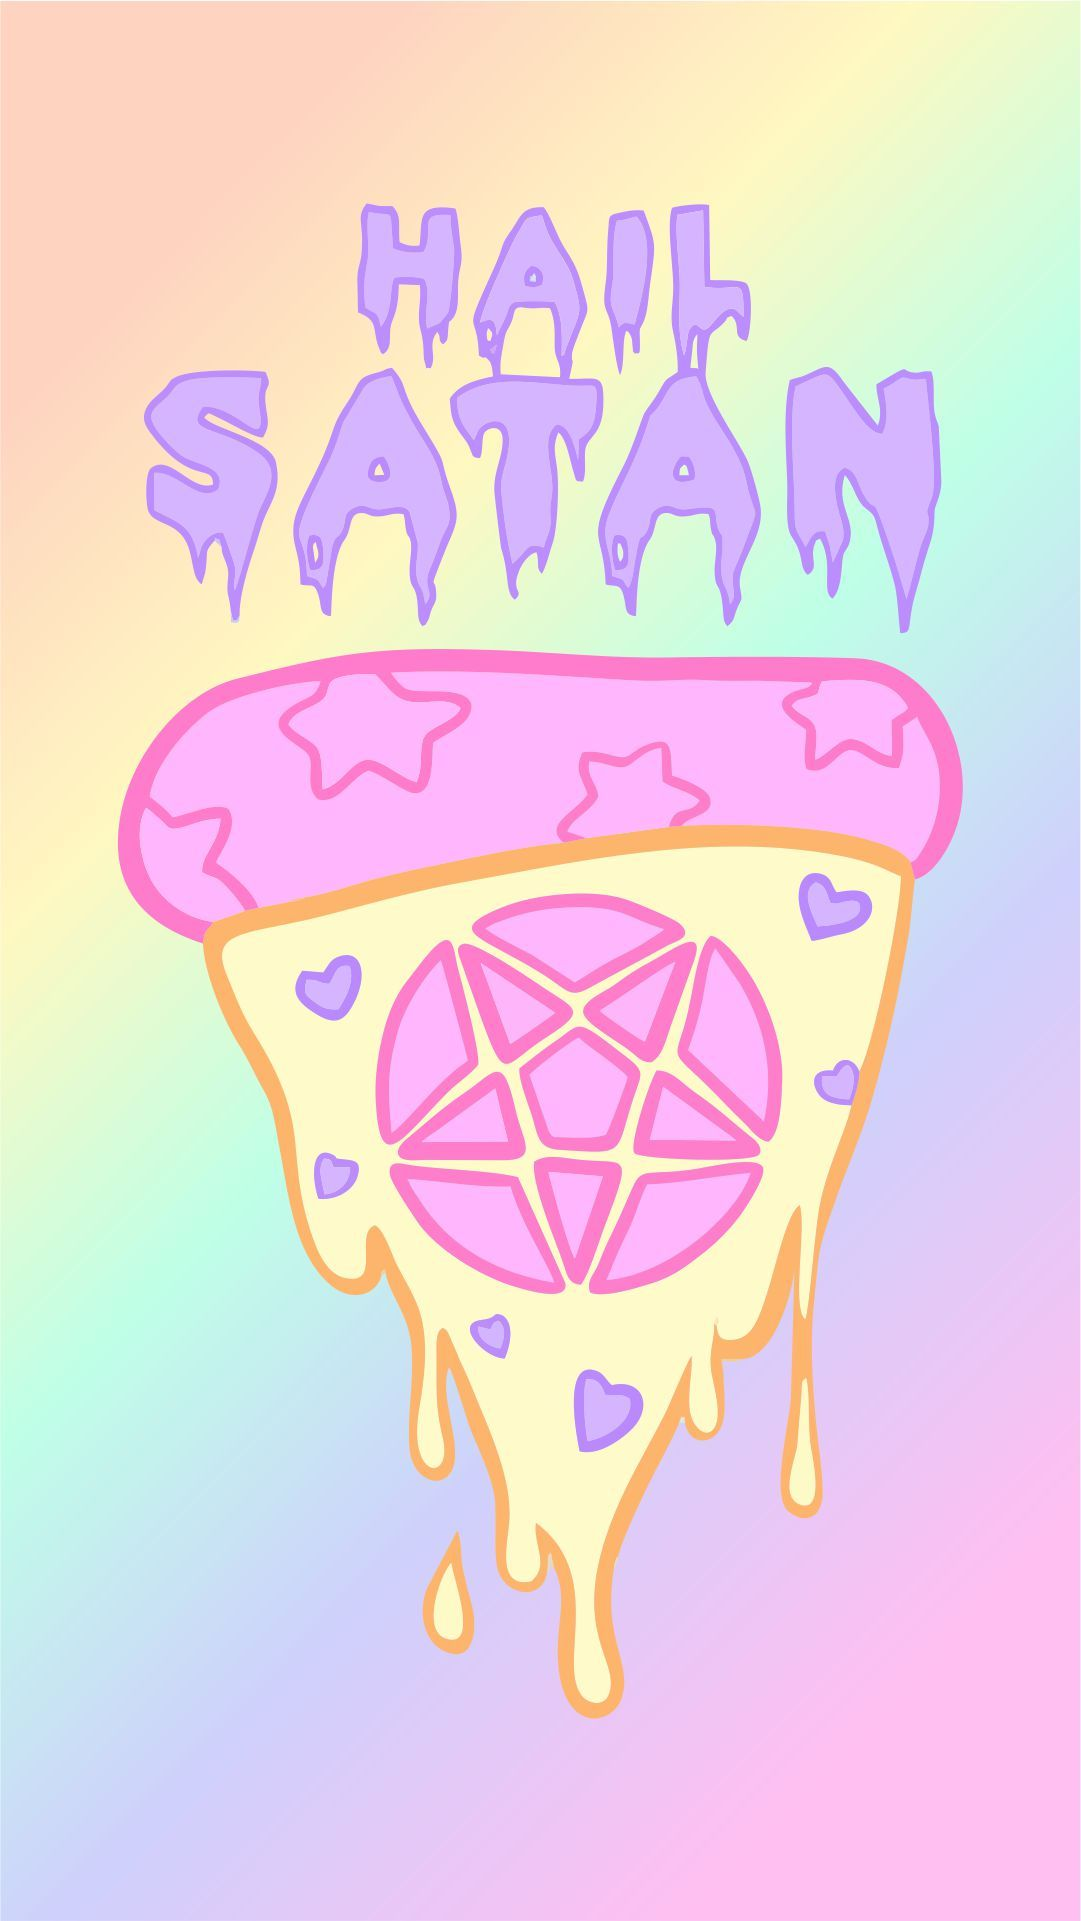 Hail Satan wallpaper